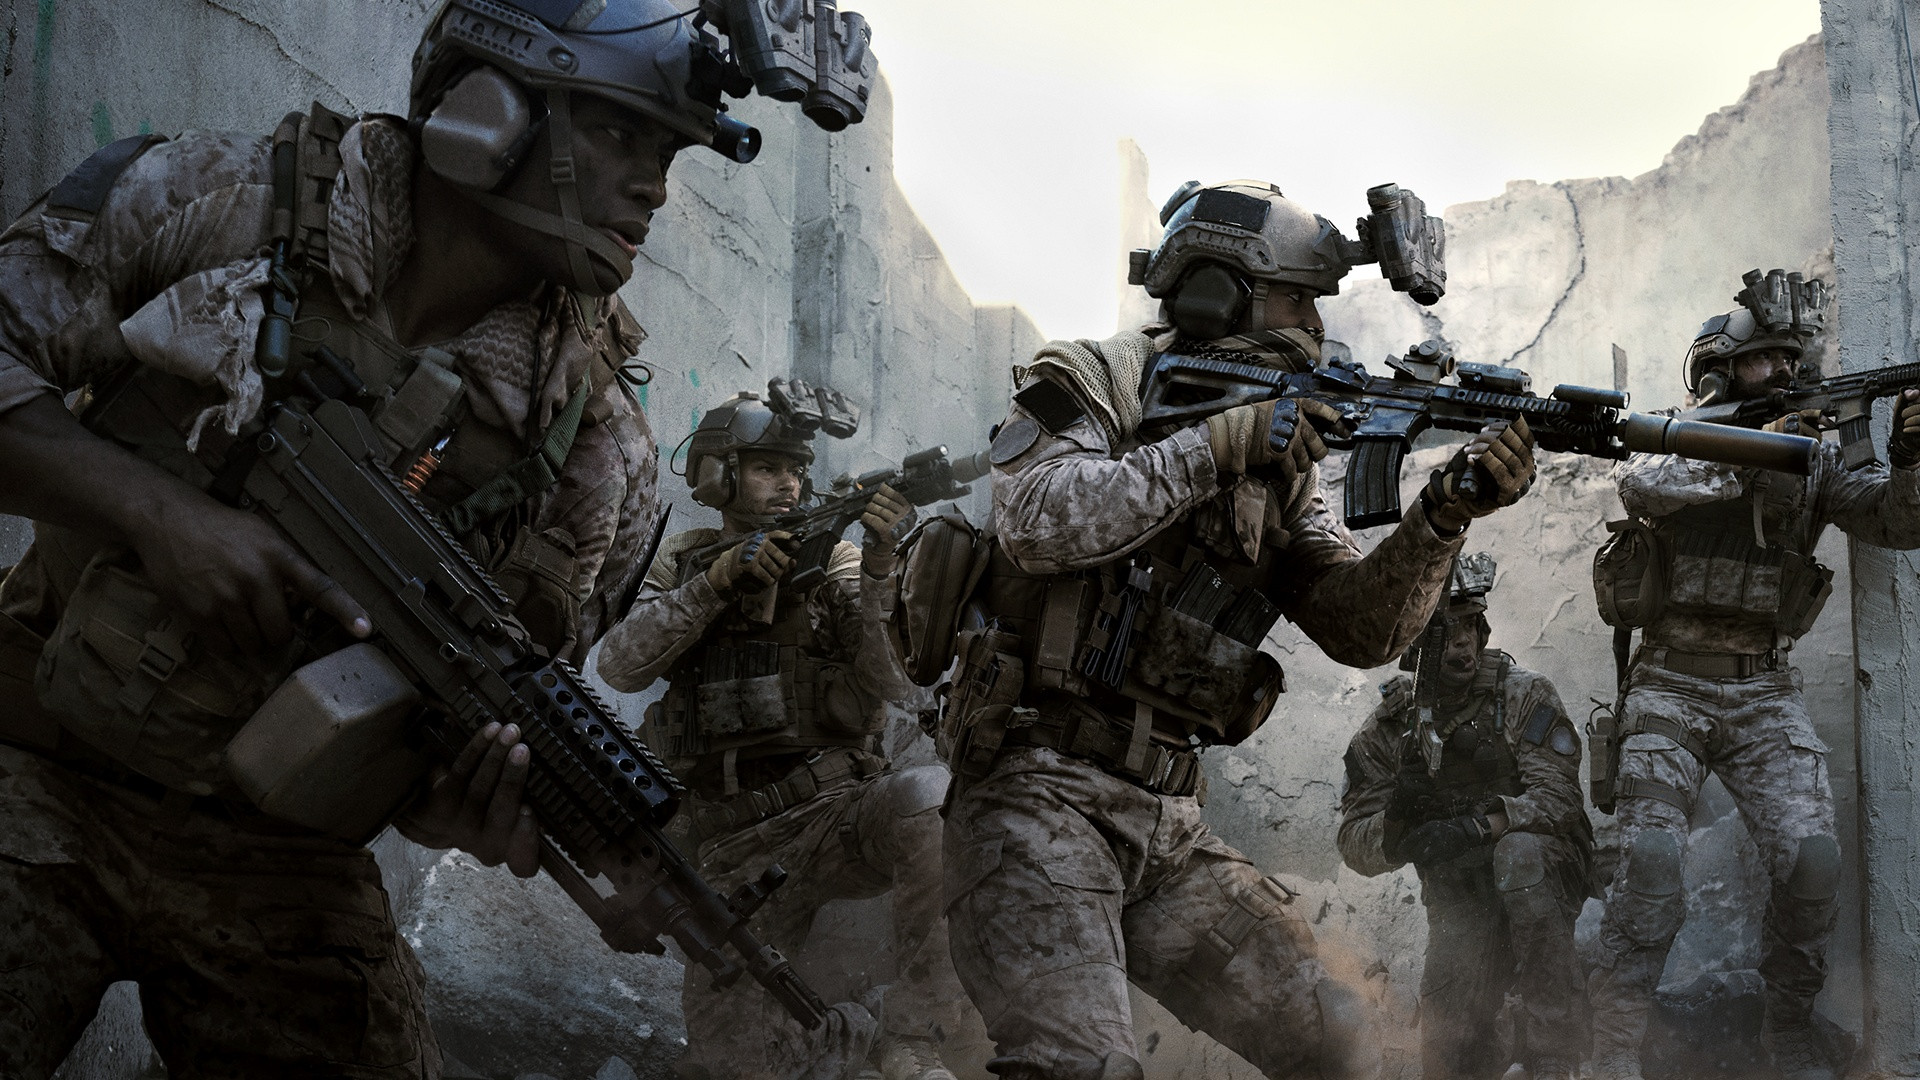 Download Call Of Duty Modern Warfare Hd Wallpaper 69253 1920x1080